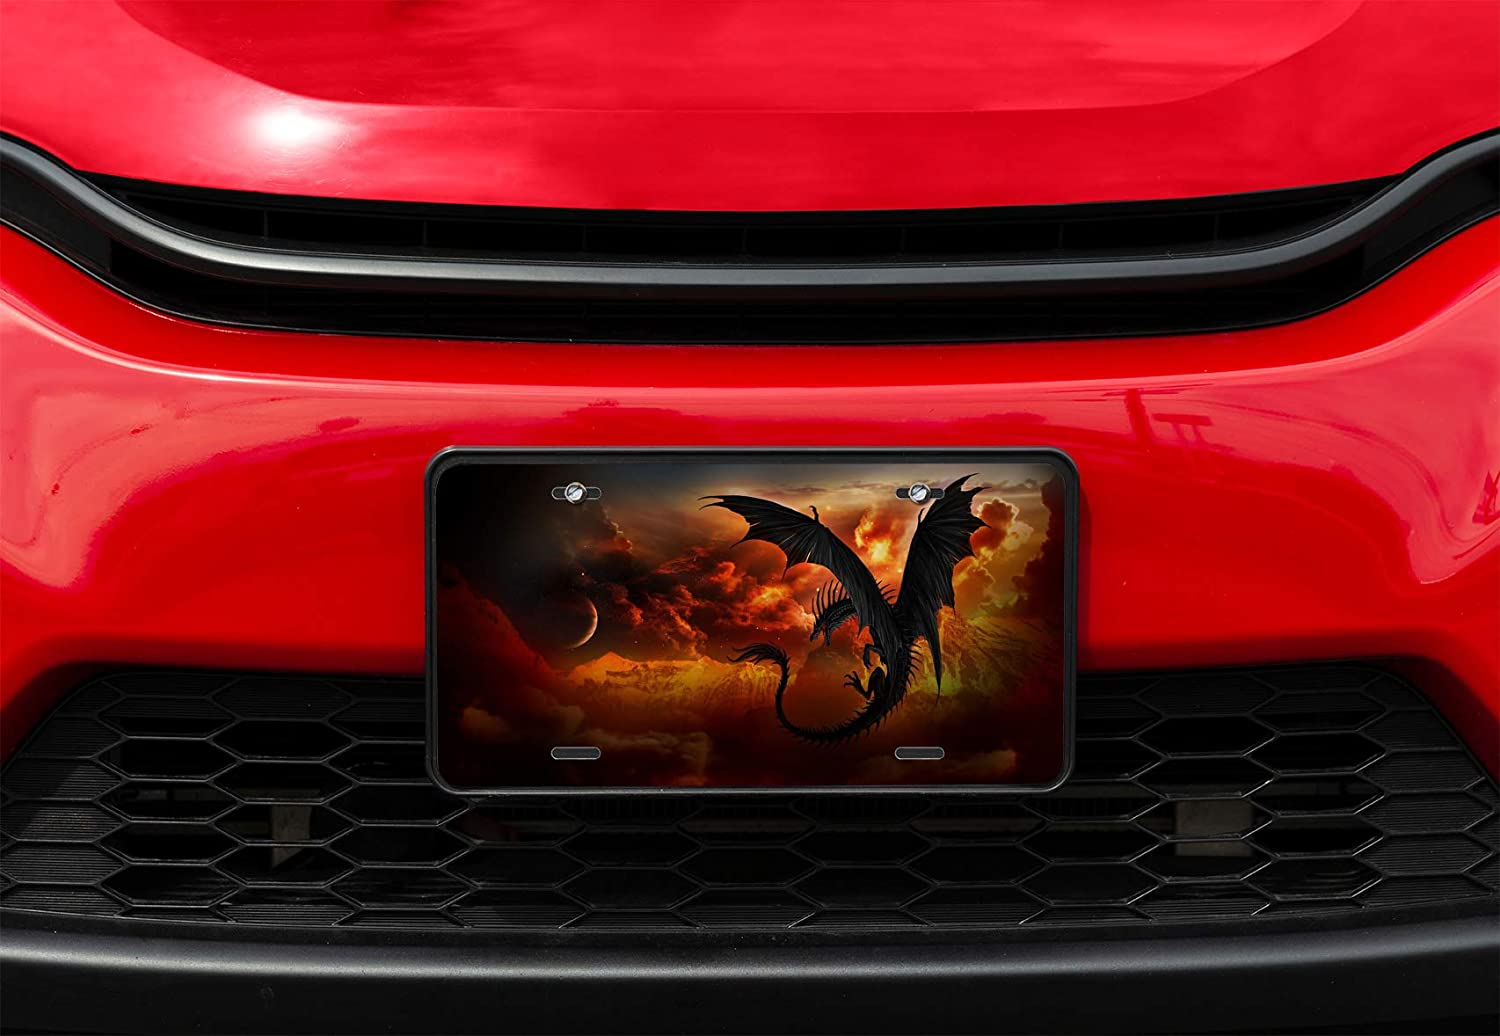 Amcove License Plate Two Dragon Heads in Fire Decorative Car Front License Plate,Vanity Tag,Metal Car Plate,Aluminum Novelty License Plate for Men//Women//Boy//Girls Car,6 X 12 Inch